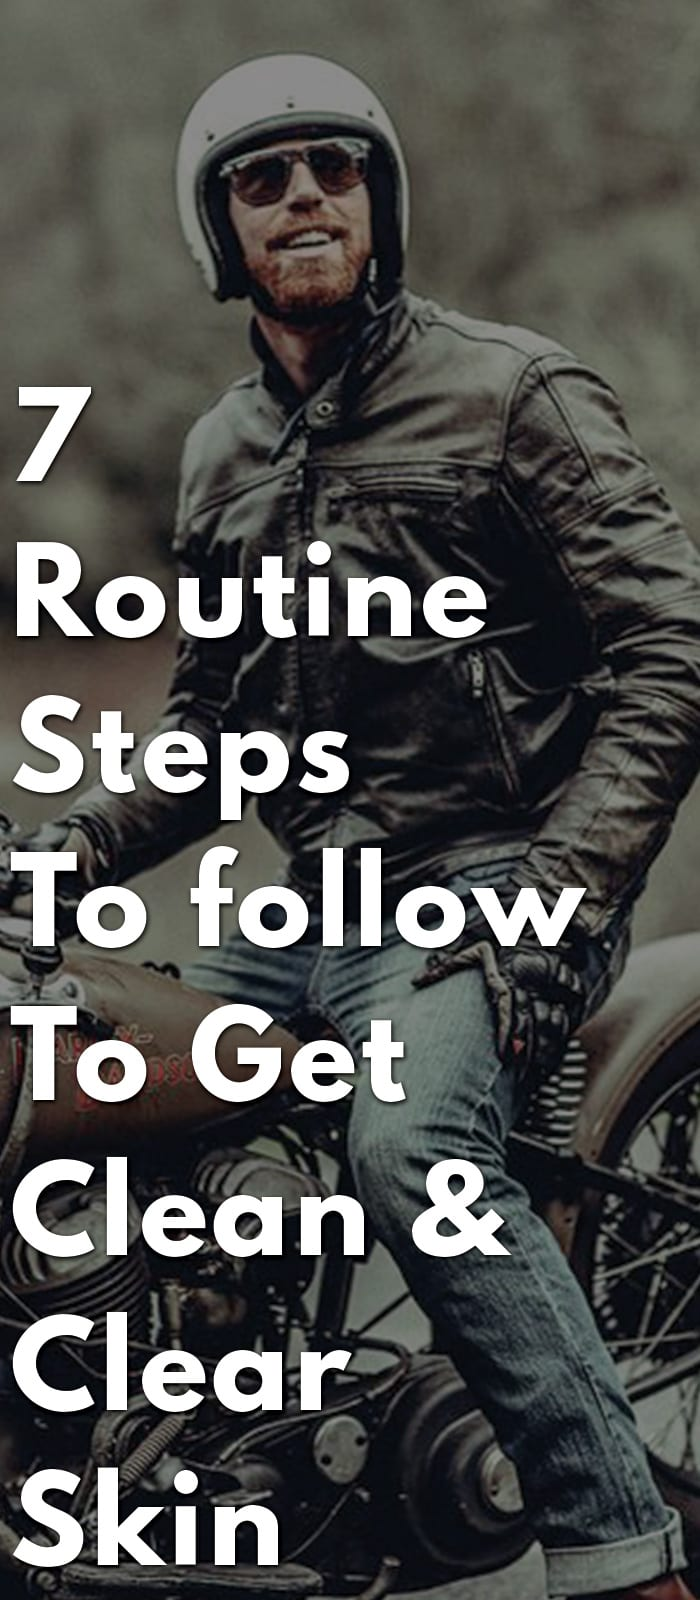 7-Routine-Steps-To-follow-To-Get-Clean-&-Clear-Skin